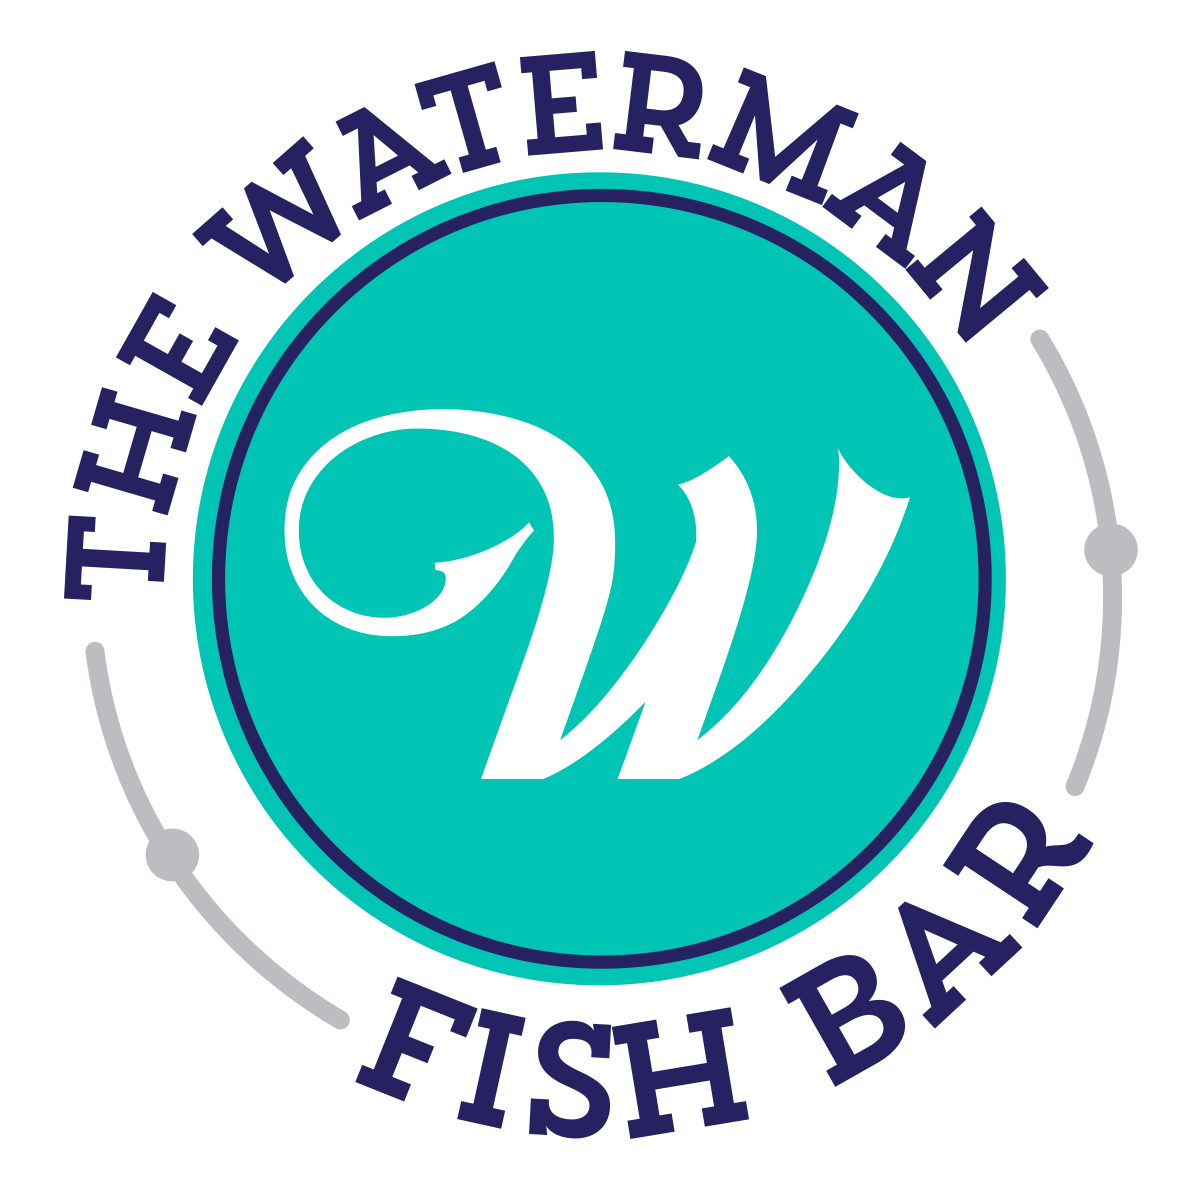 The Waterman